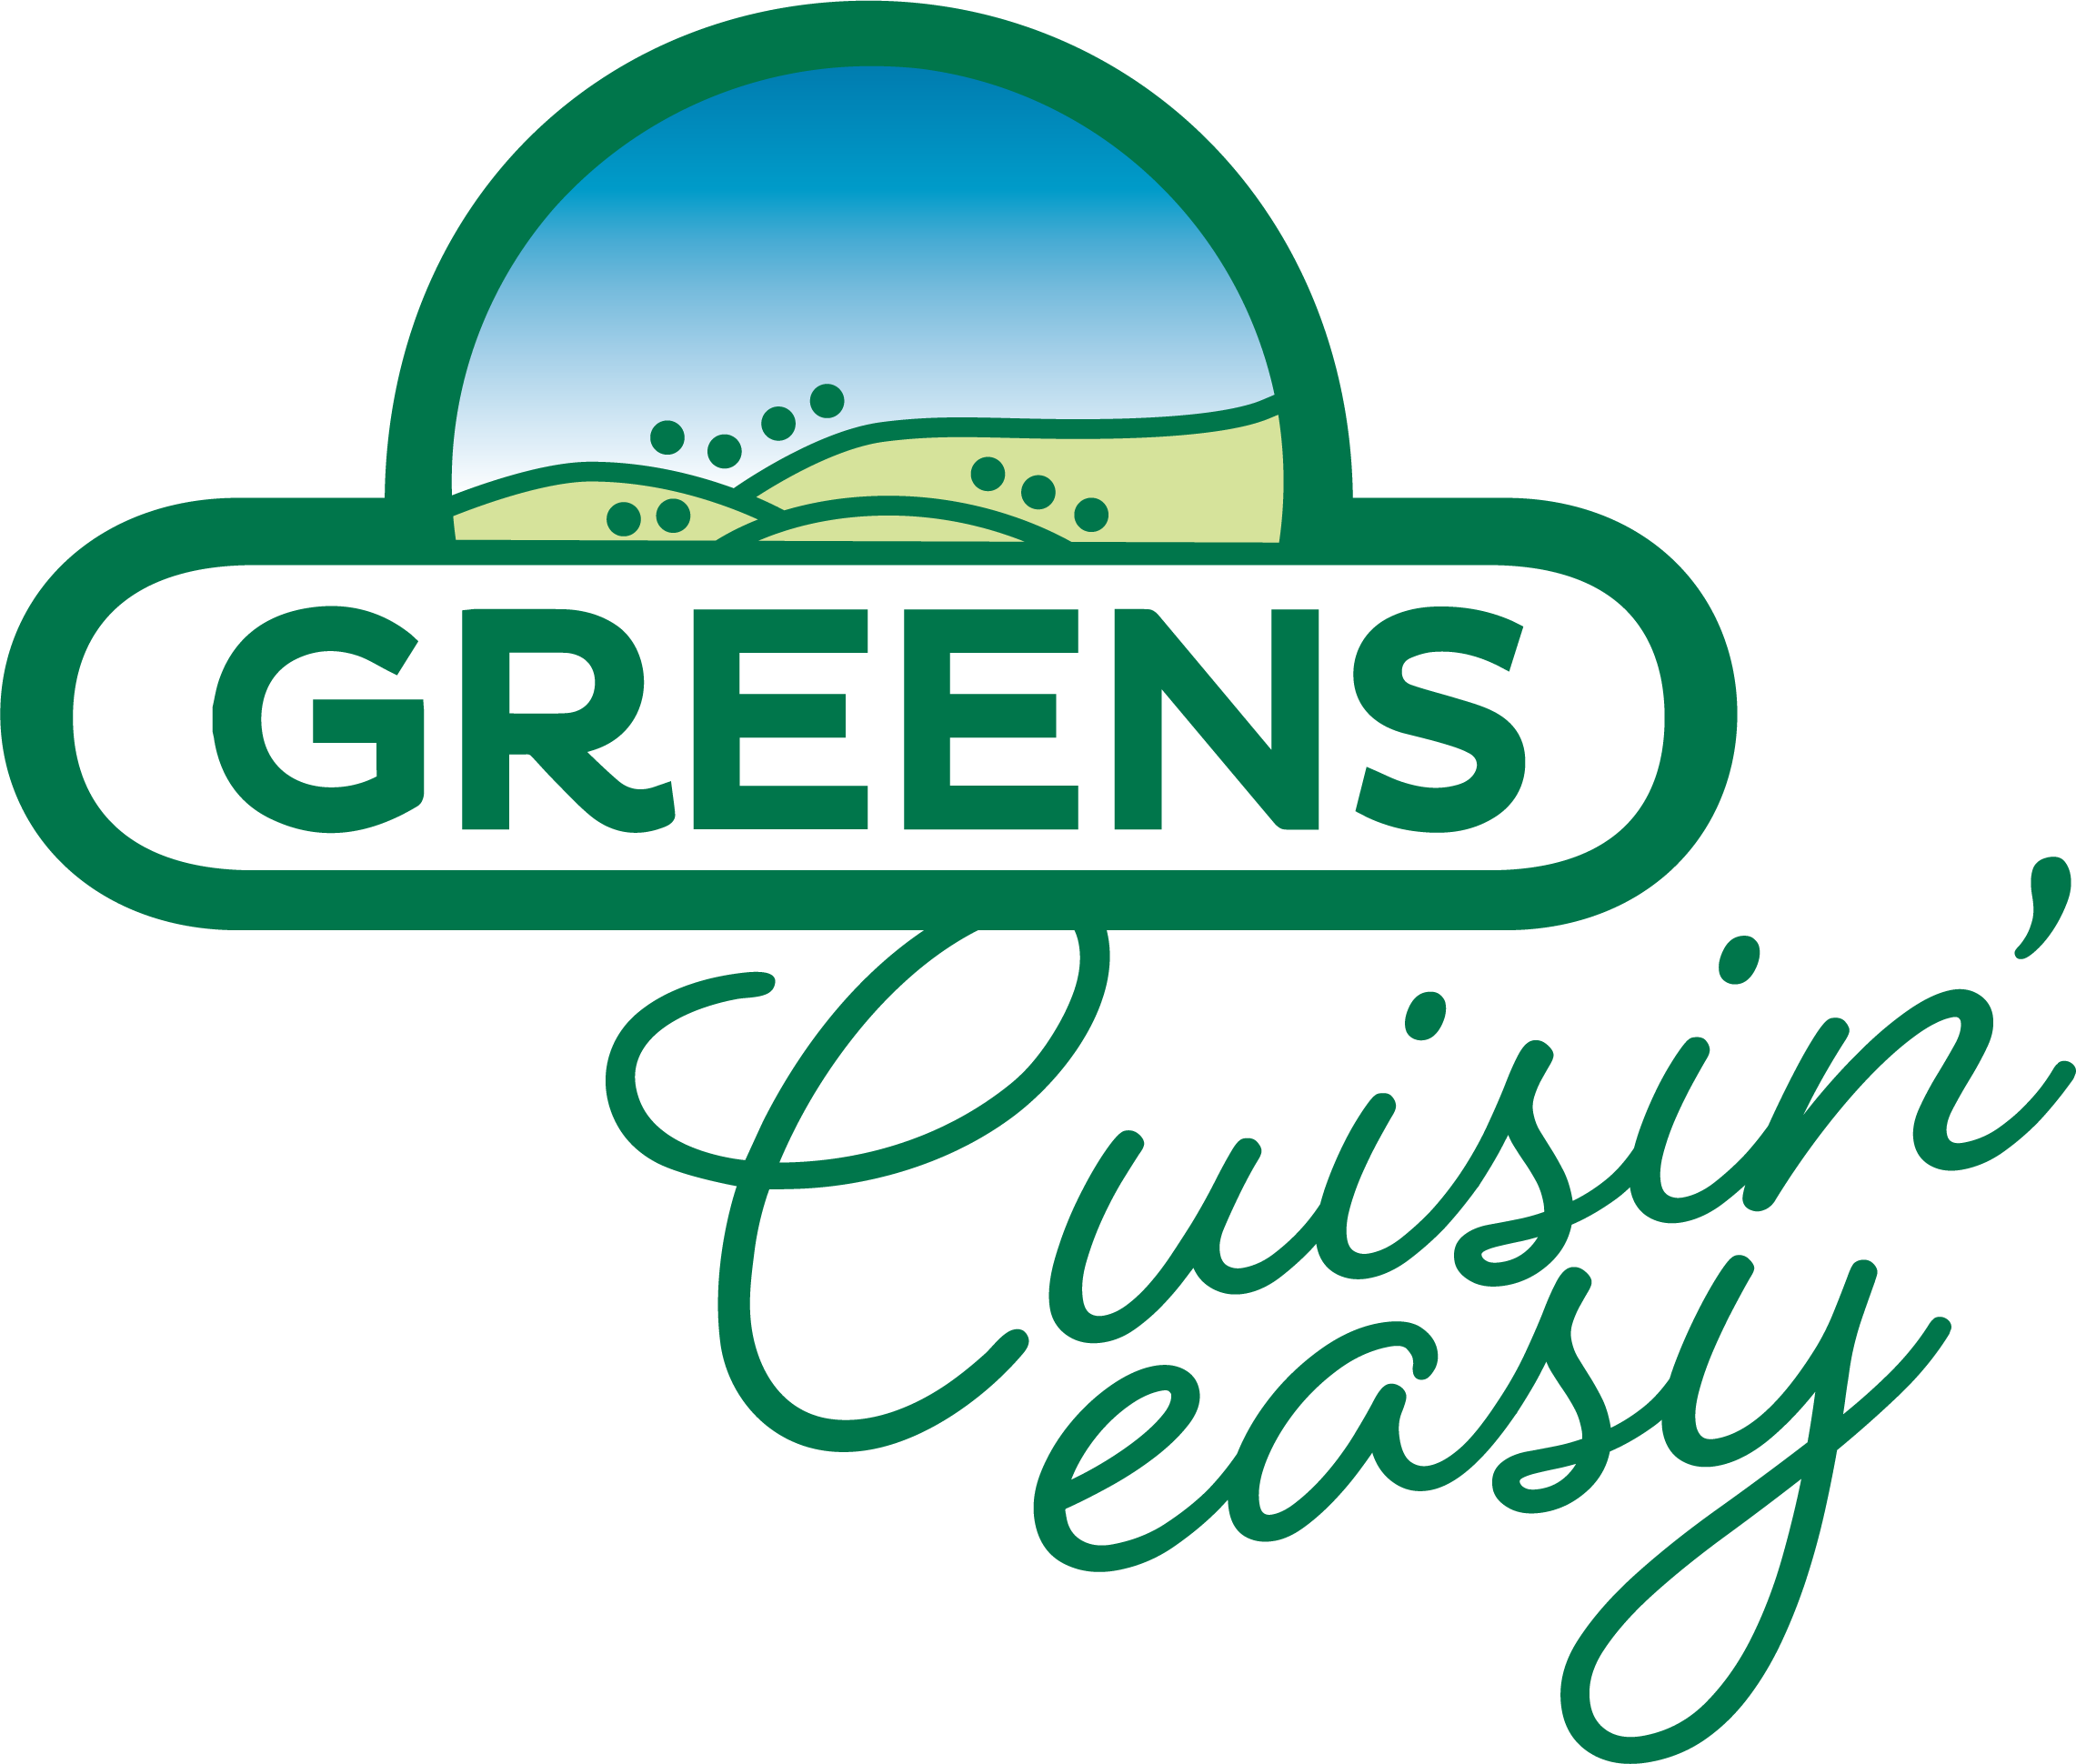 Cuisin'easy new logo